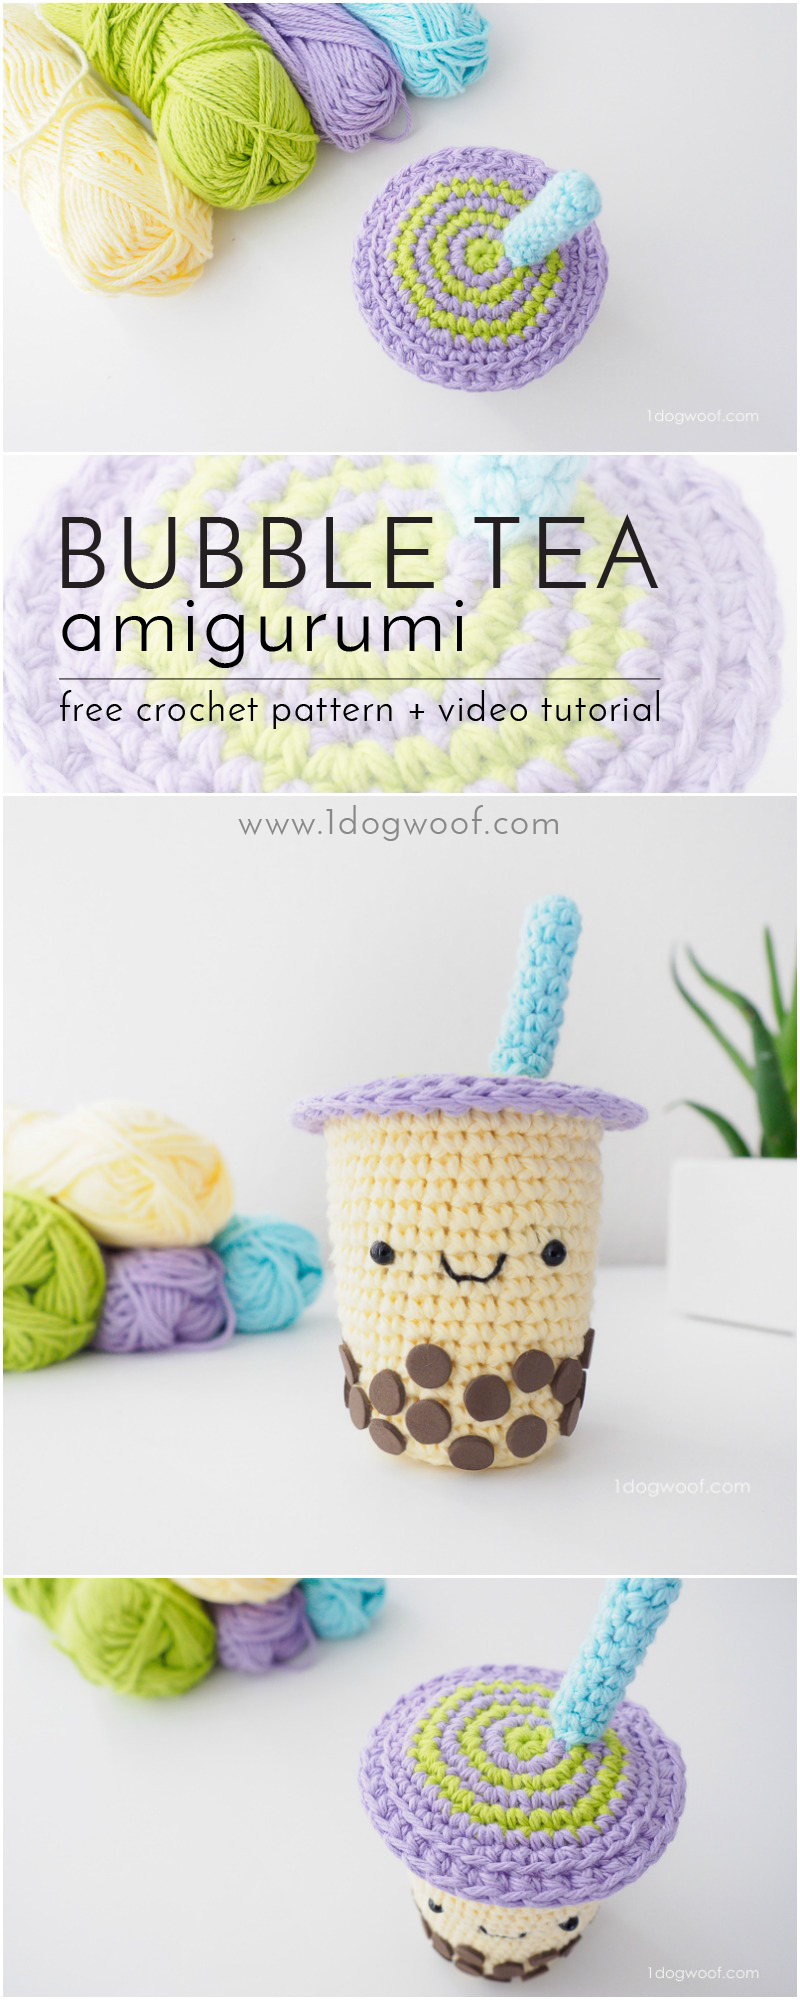 FREE crochet pattern for an adorable boba milk tea amigurumi - enjoy a sweet, sugar-free snack!